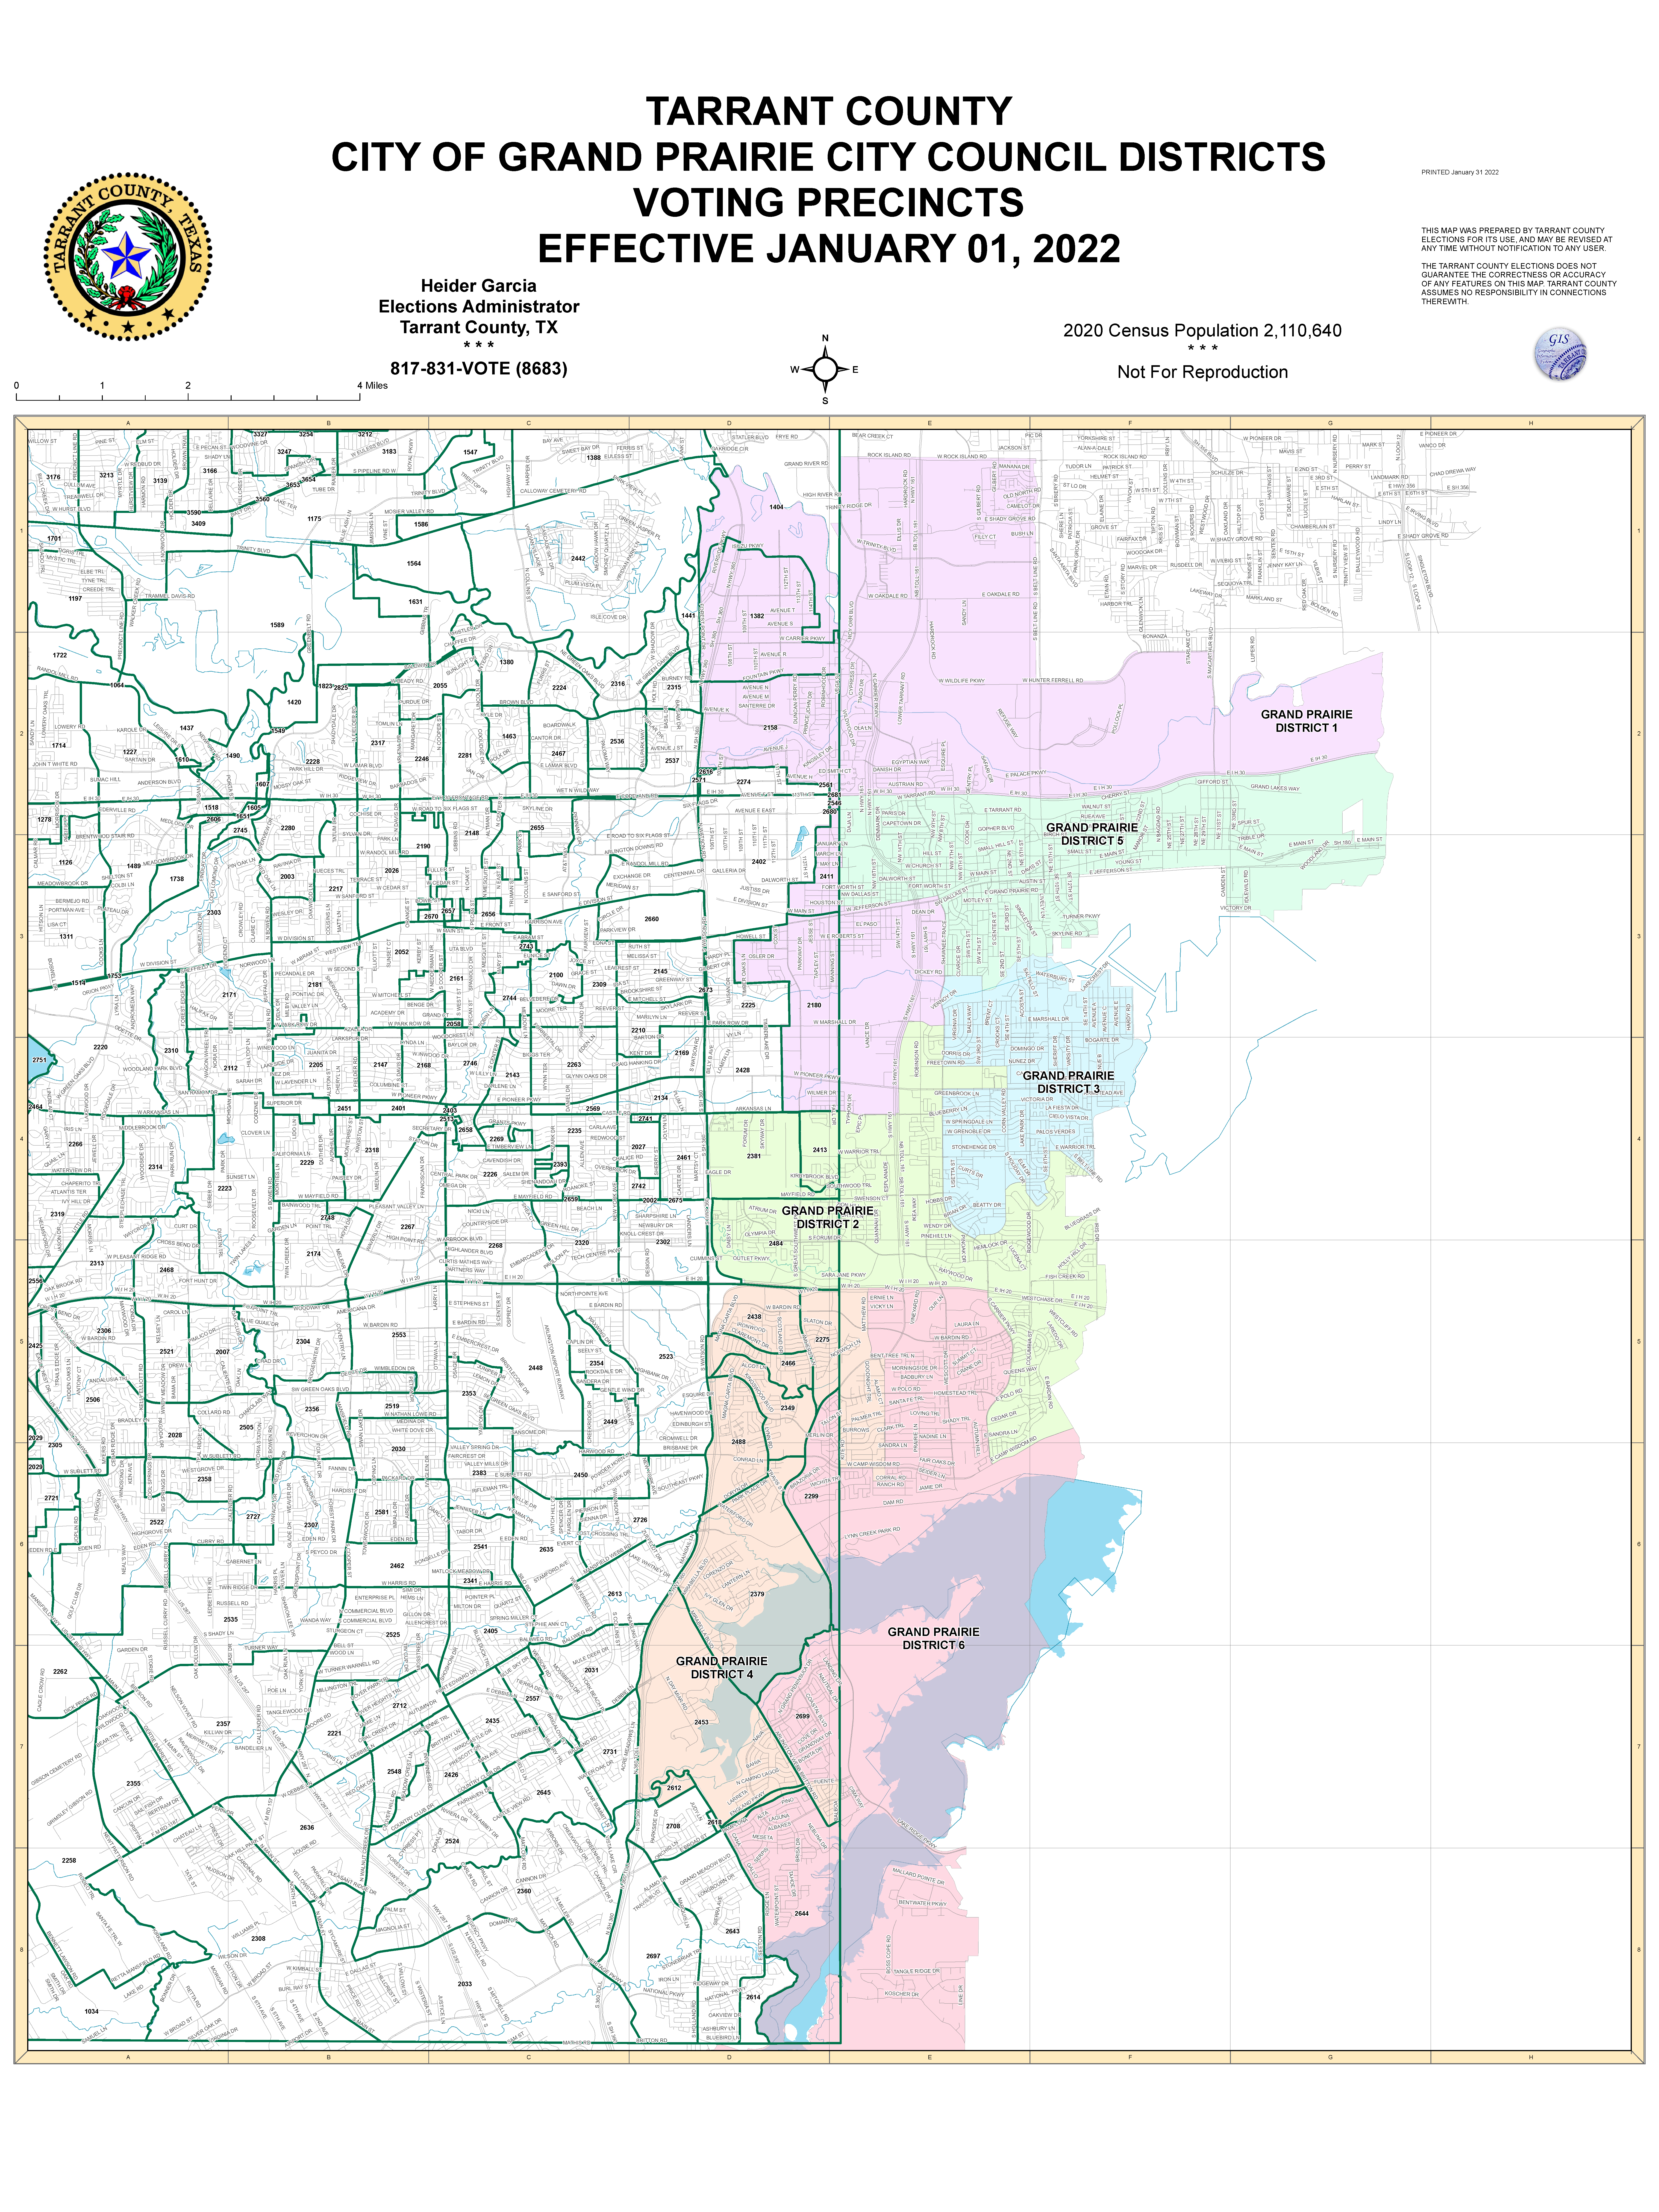 City of Grand Prairie Council Districts Map